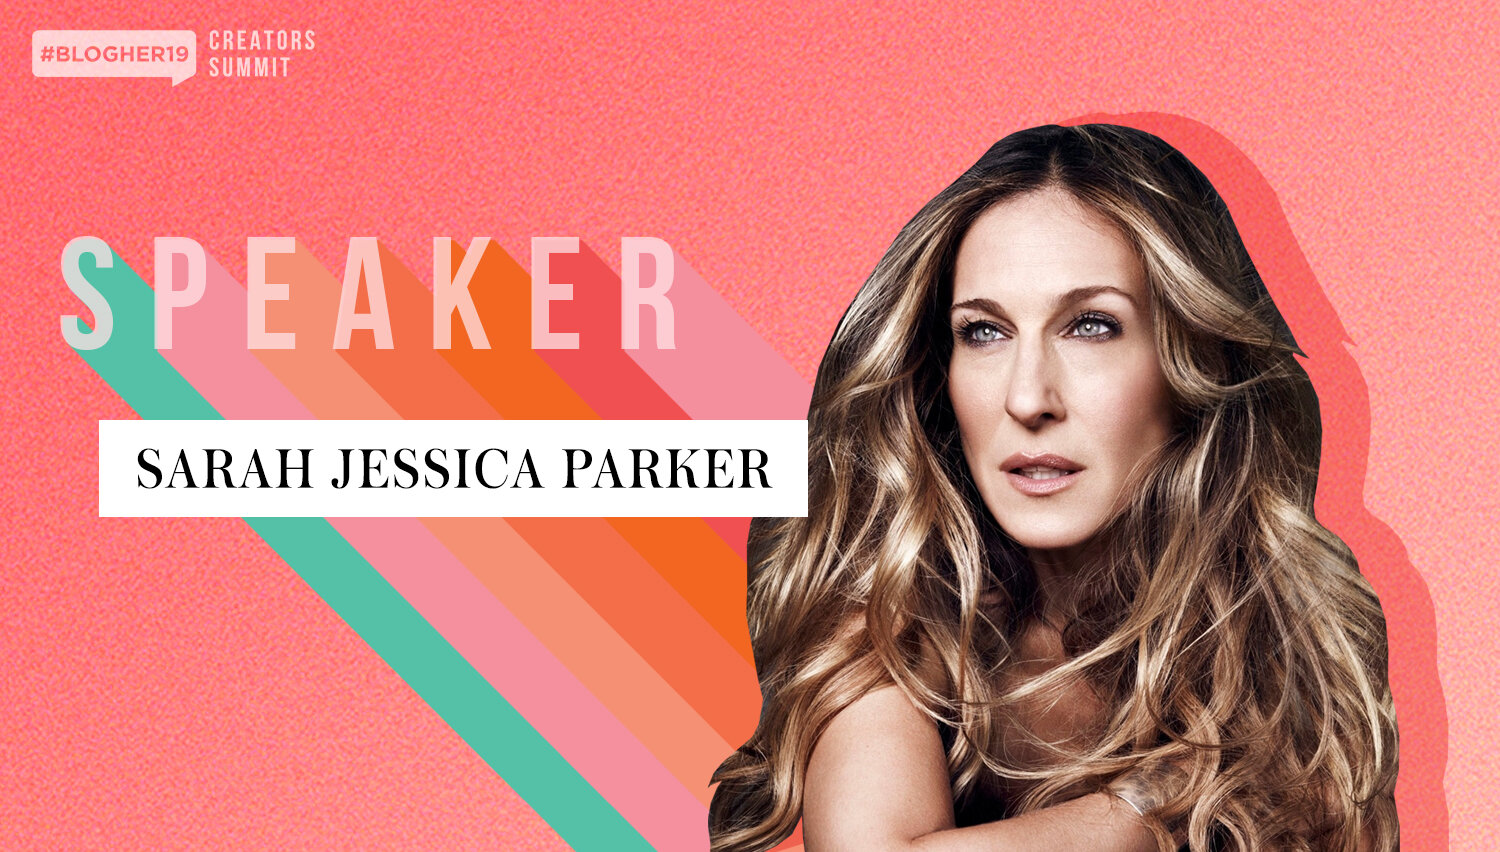 GRAB YOUR FAVORITE HEELS (AND WINE GLASS) BECAUSE SJP IS Coming to #blogher! - Emmy® Award-winning actress, producer, and entrepreneur Sarah Jessica Parker will be joining #BlogHer19 Creators Summit… and she's bringing her new wine, #InvivoxSJP!